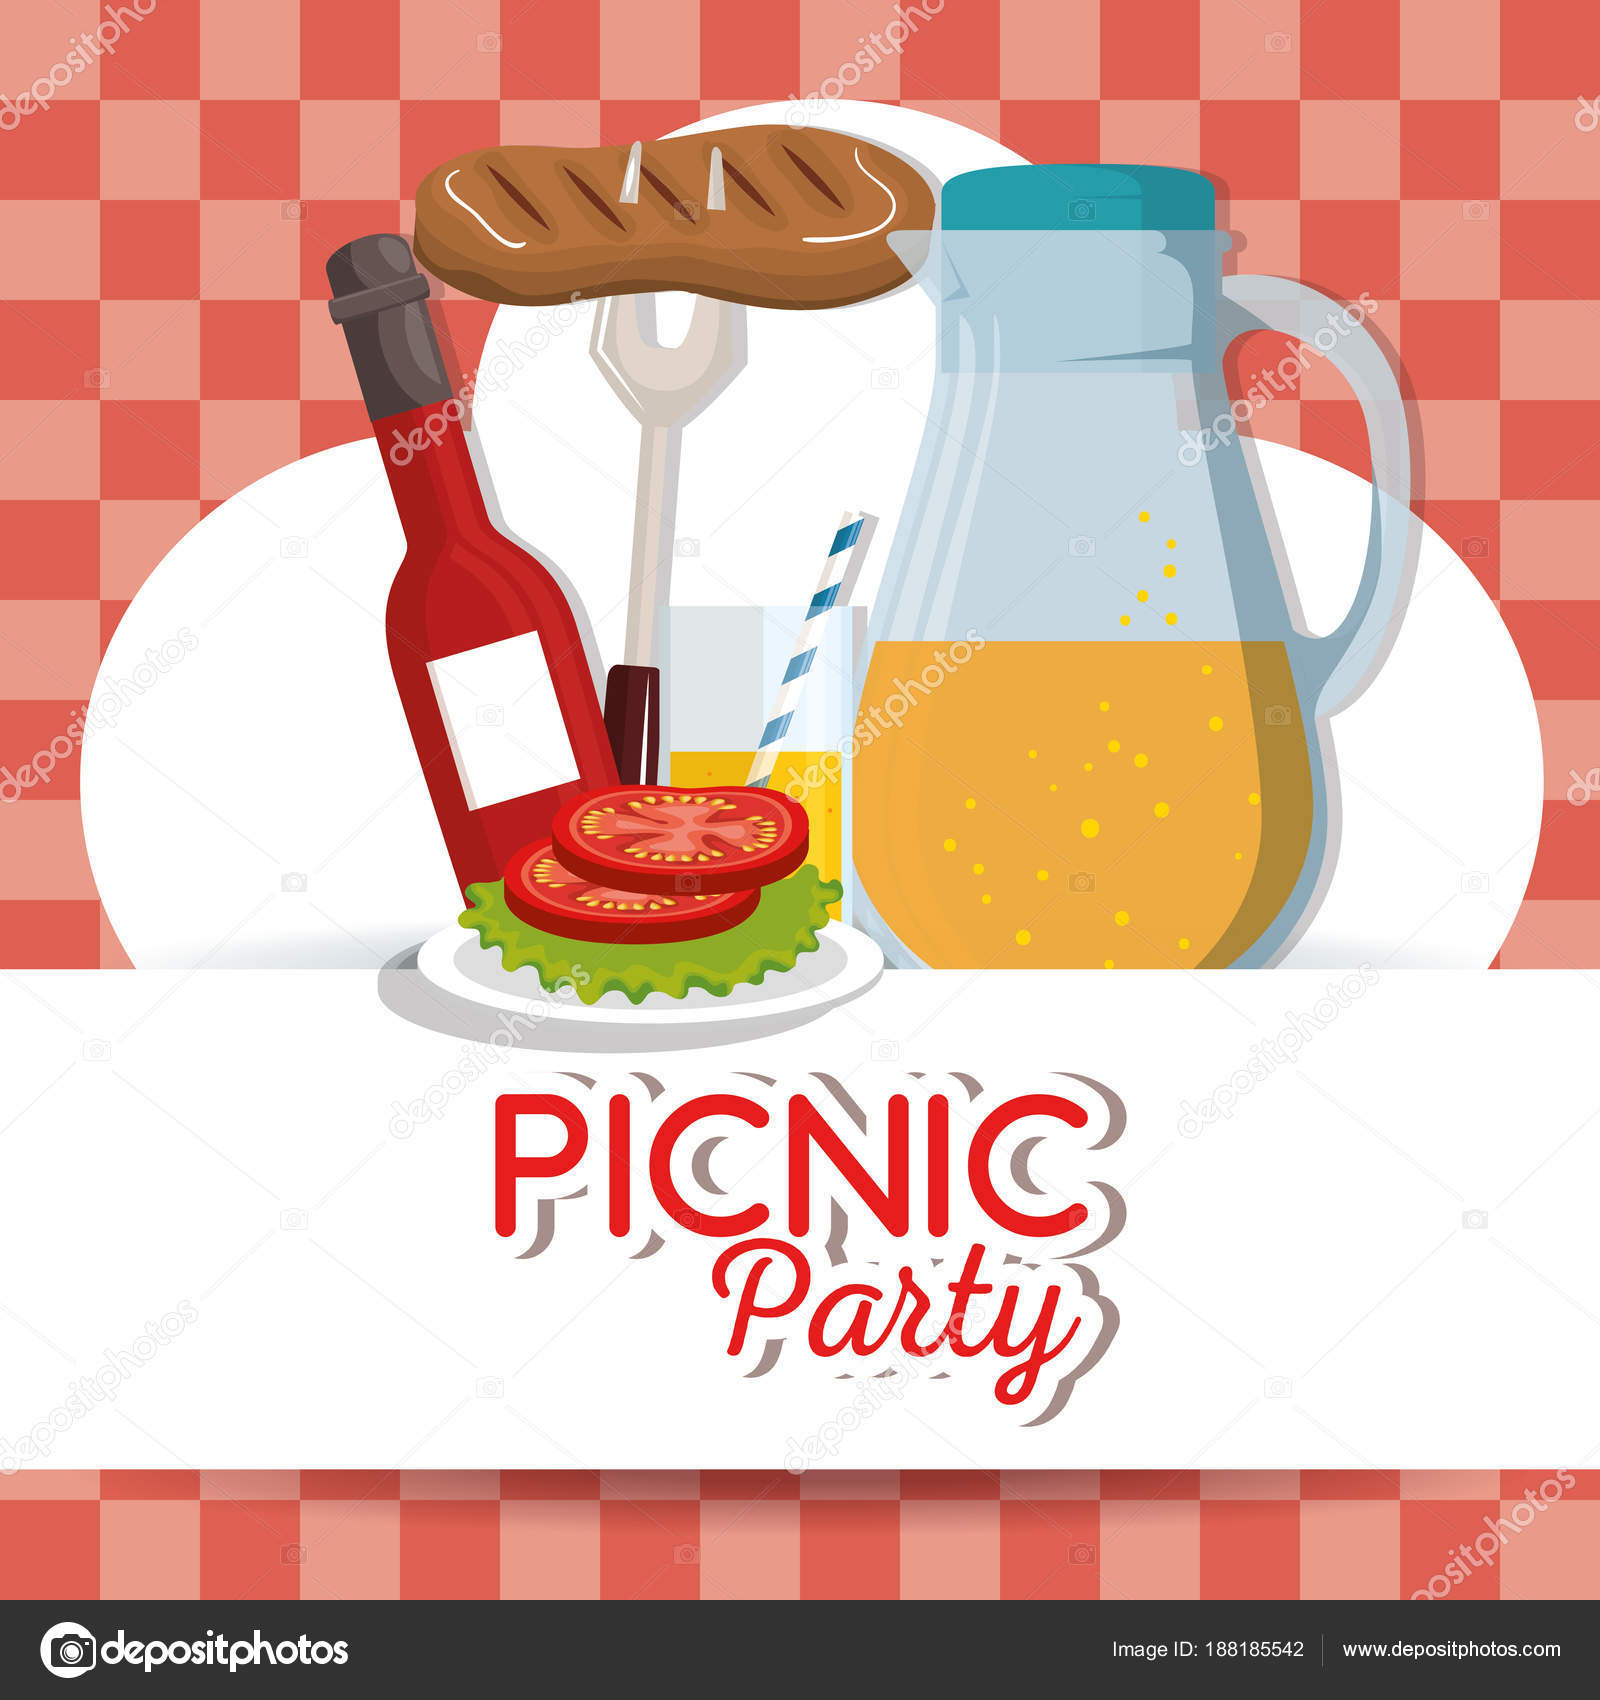 Picnic party invitation set icons stock vector yupiramos 188185542 picnic party invitation set icons stock vector stopboris Images